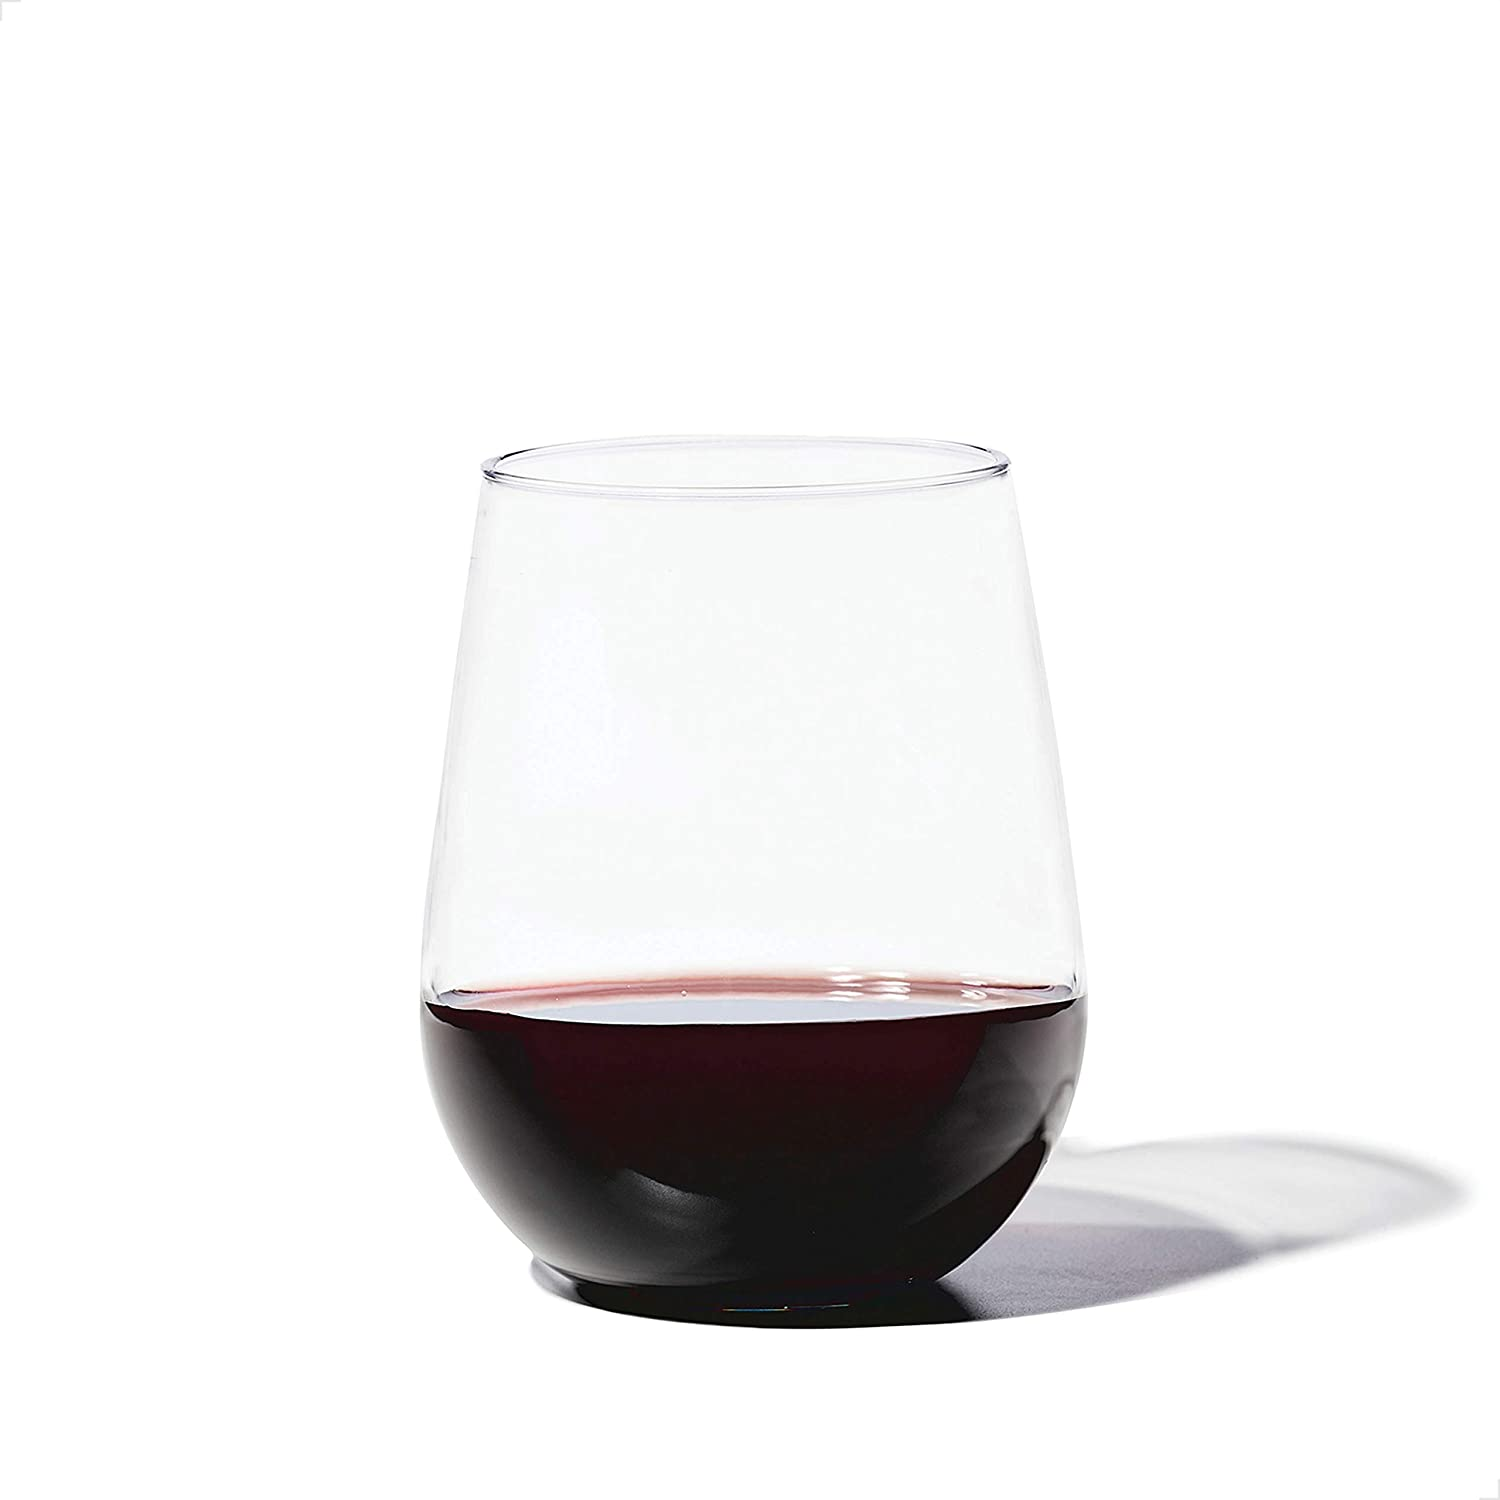 TOSSWARE 16oz Stemless Wine SET OF 4, Tritan Dishwasher Safe & Heat Resistant Unbreakable Plastic Drinking Glasses